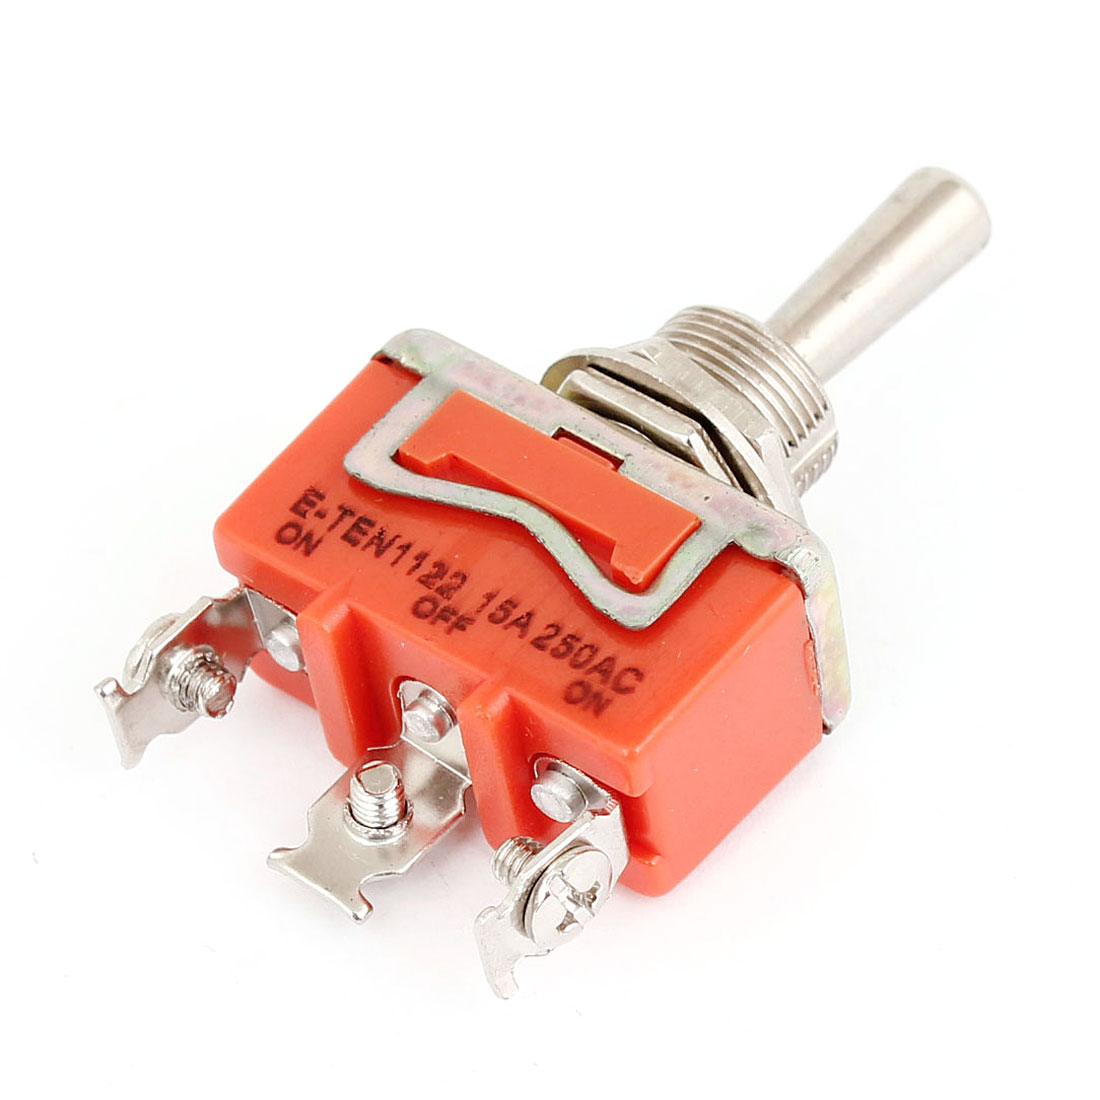 AC 250V 15A Vehicle Car On/Off/On 3 Position 3 Pin Toggle Switch